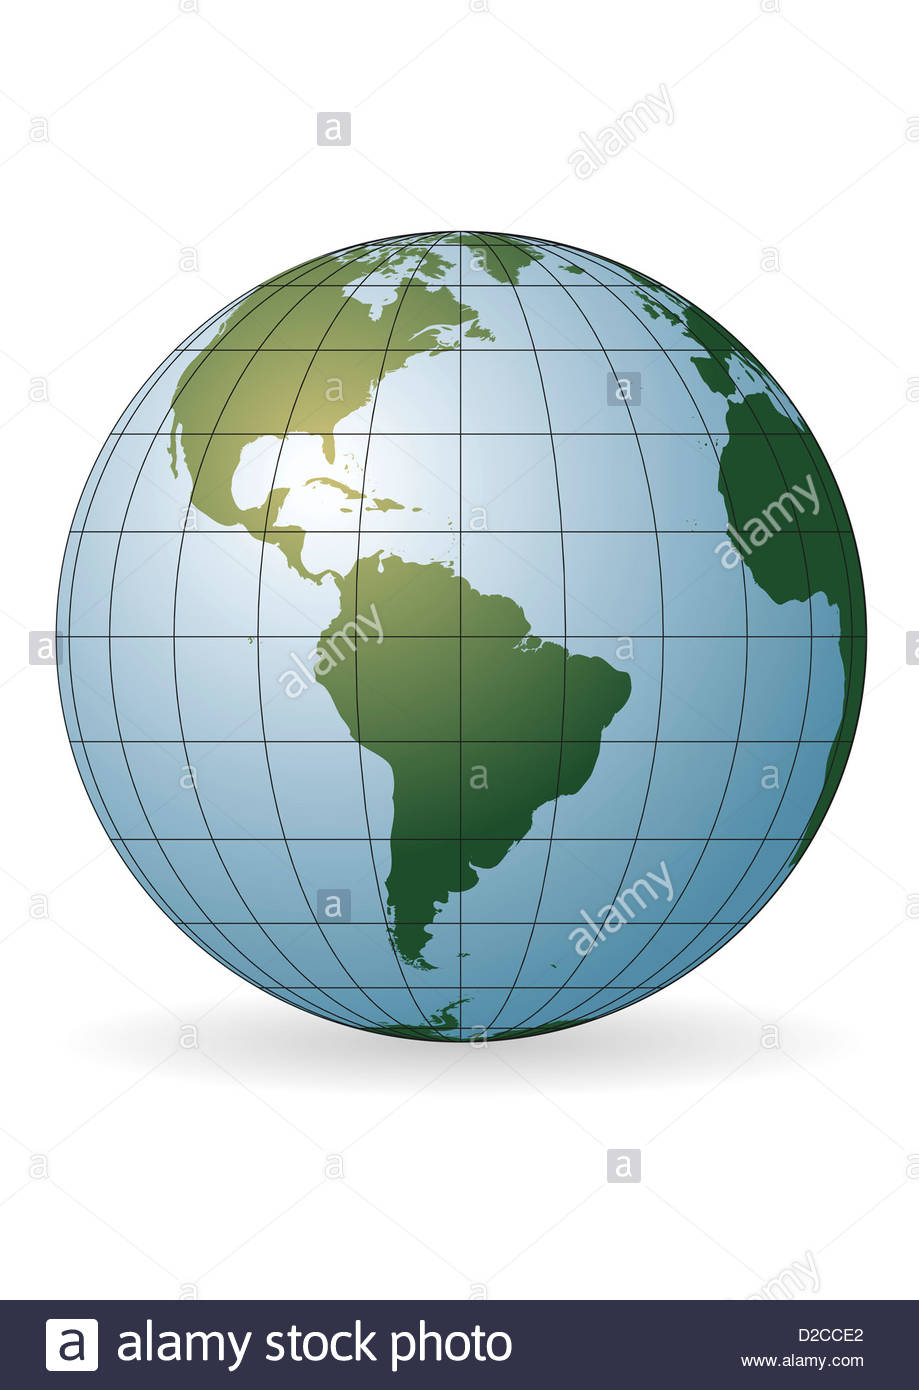 South america map antarctica north america africa stock photo south america map antarctica north america africa gumiabroncs Image collections